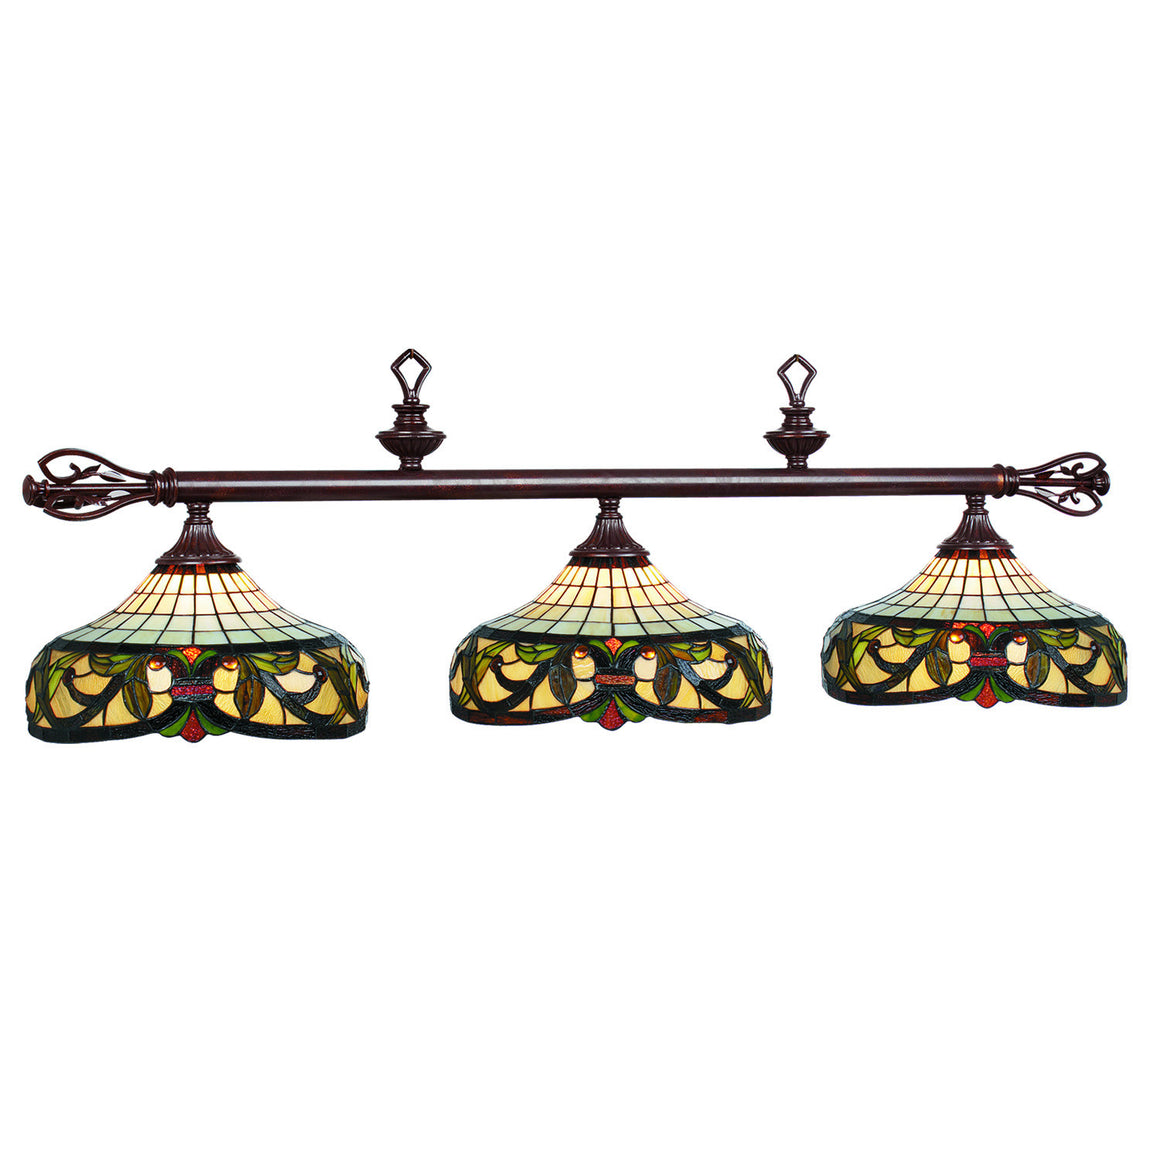 Billiards Lighting_Harmony Stained Glass 3-Light Fixture - Man Cave Boutique